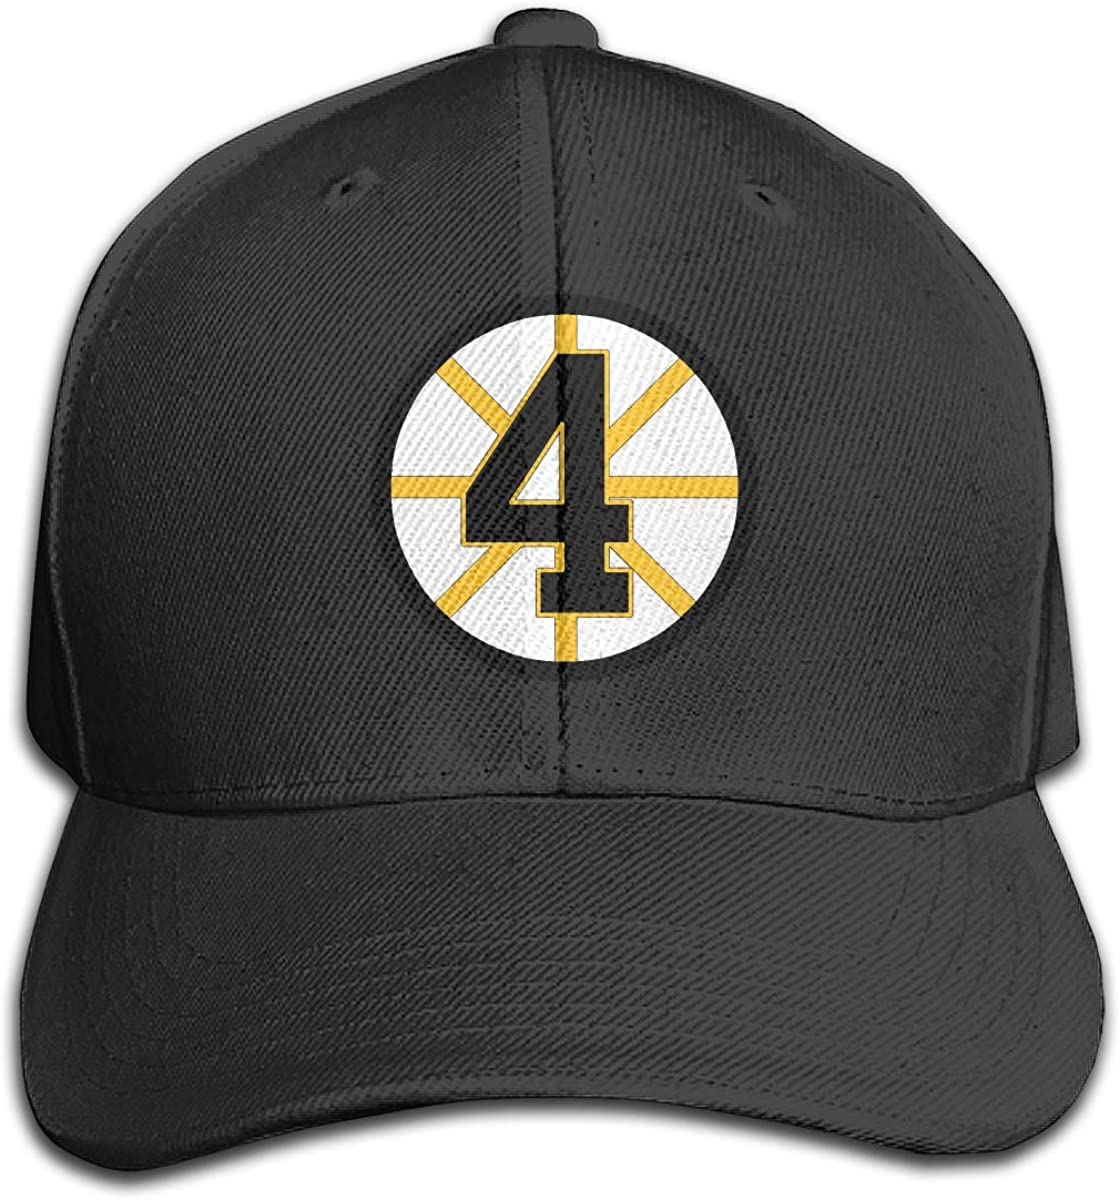 MTG Stained Glass Fashion Adjustable Cotton Baseball Caps Trucker Driver Hat Outdoor Cap Black